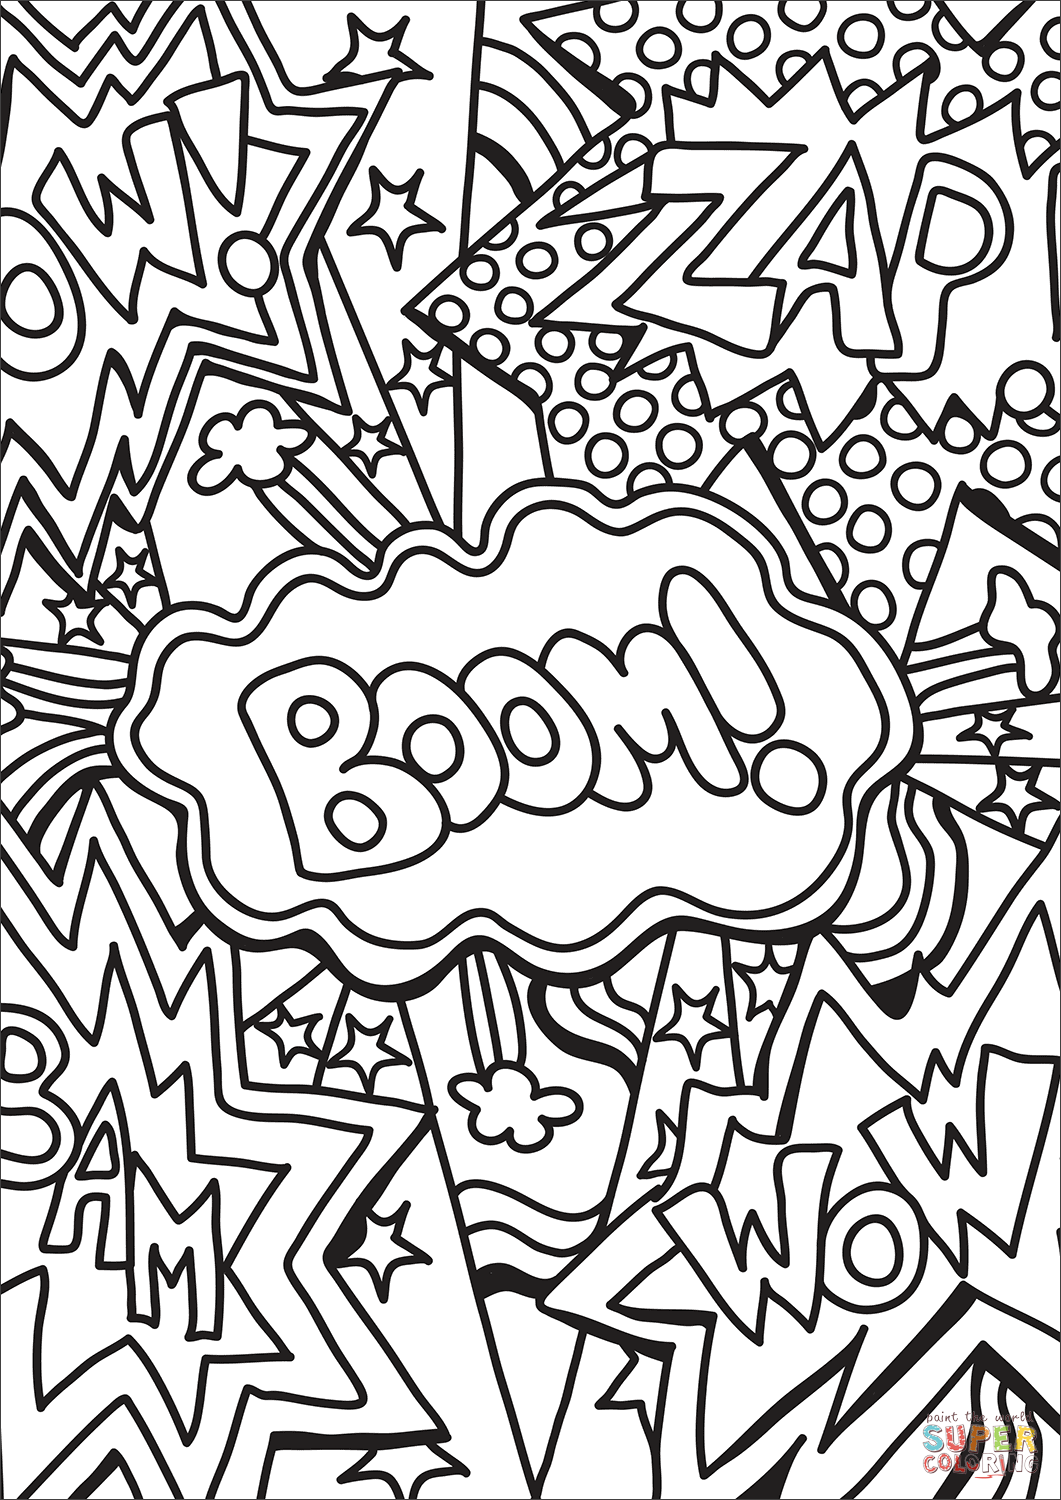 Zap Boom Wow Coloring Page Free Printable Coloring Pages Pop Art Coloring Pages Coloring Pages Free Printable Coloring Pages